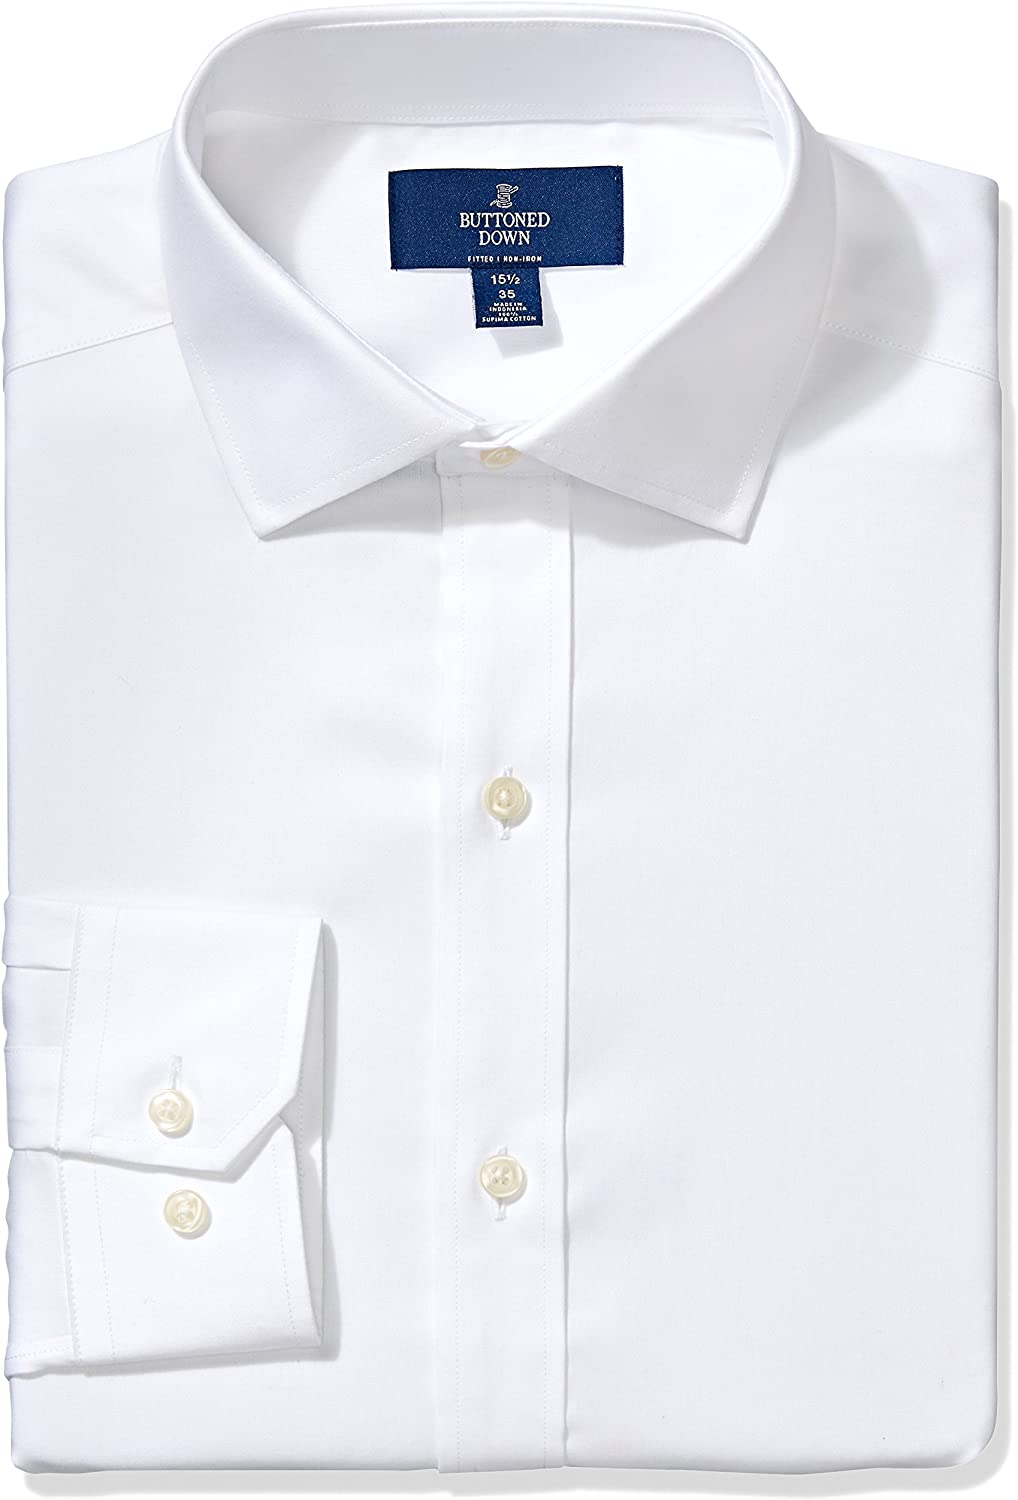 Amazon Brand - BUTTONED DOWN Men's Fitted Solid Pinpoint Dress Shirt, Supima Cotton Non-Iron